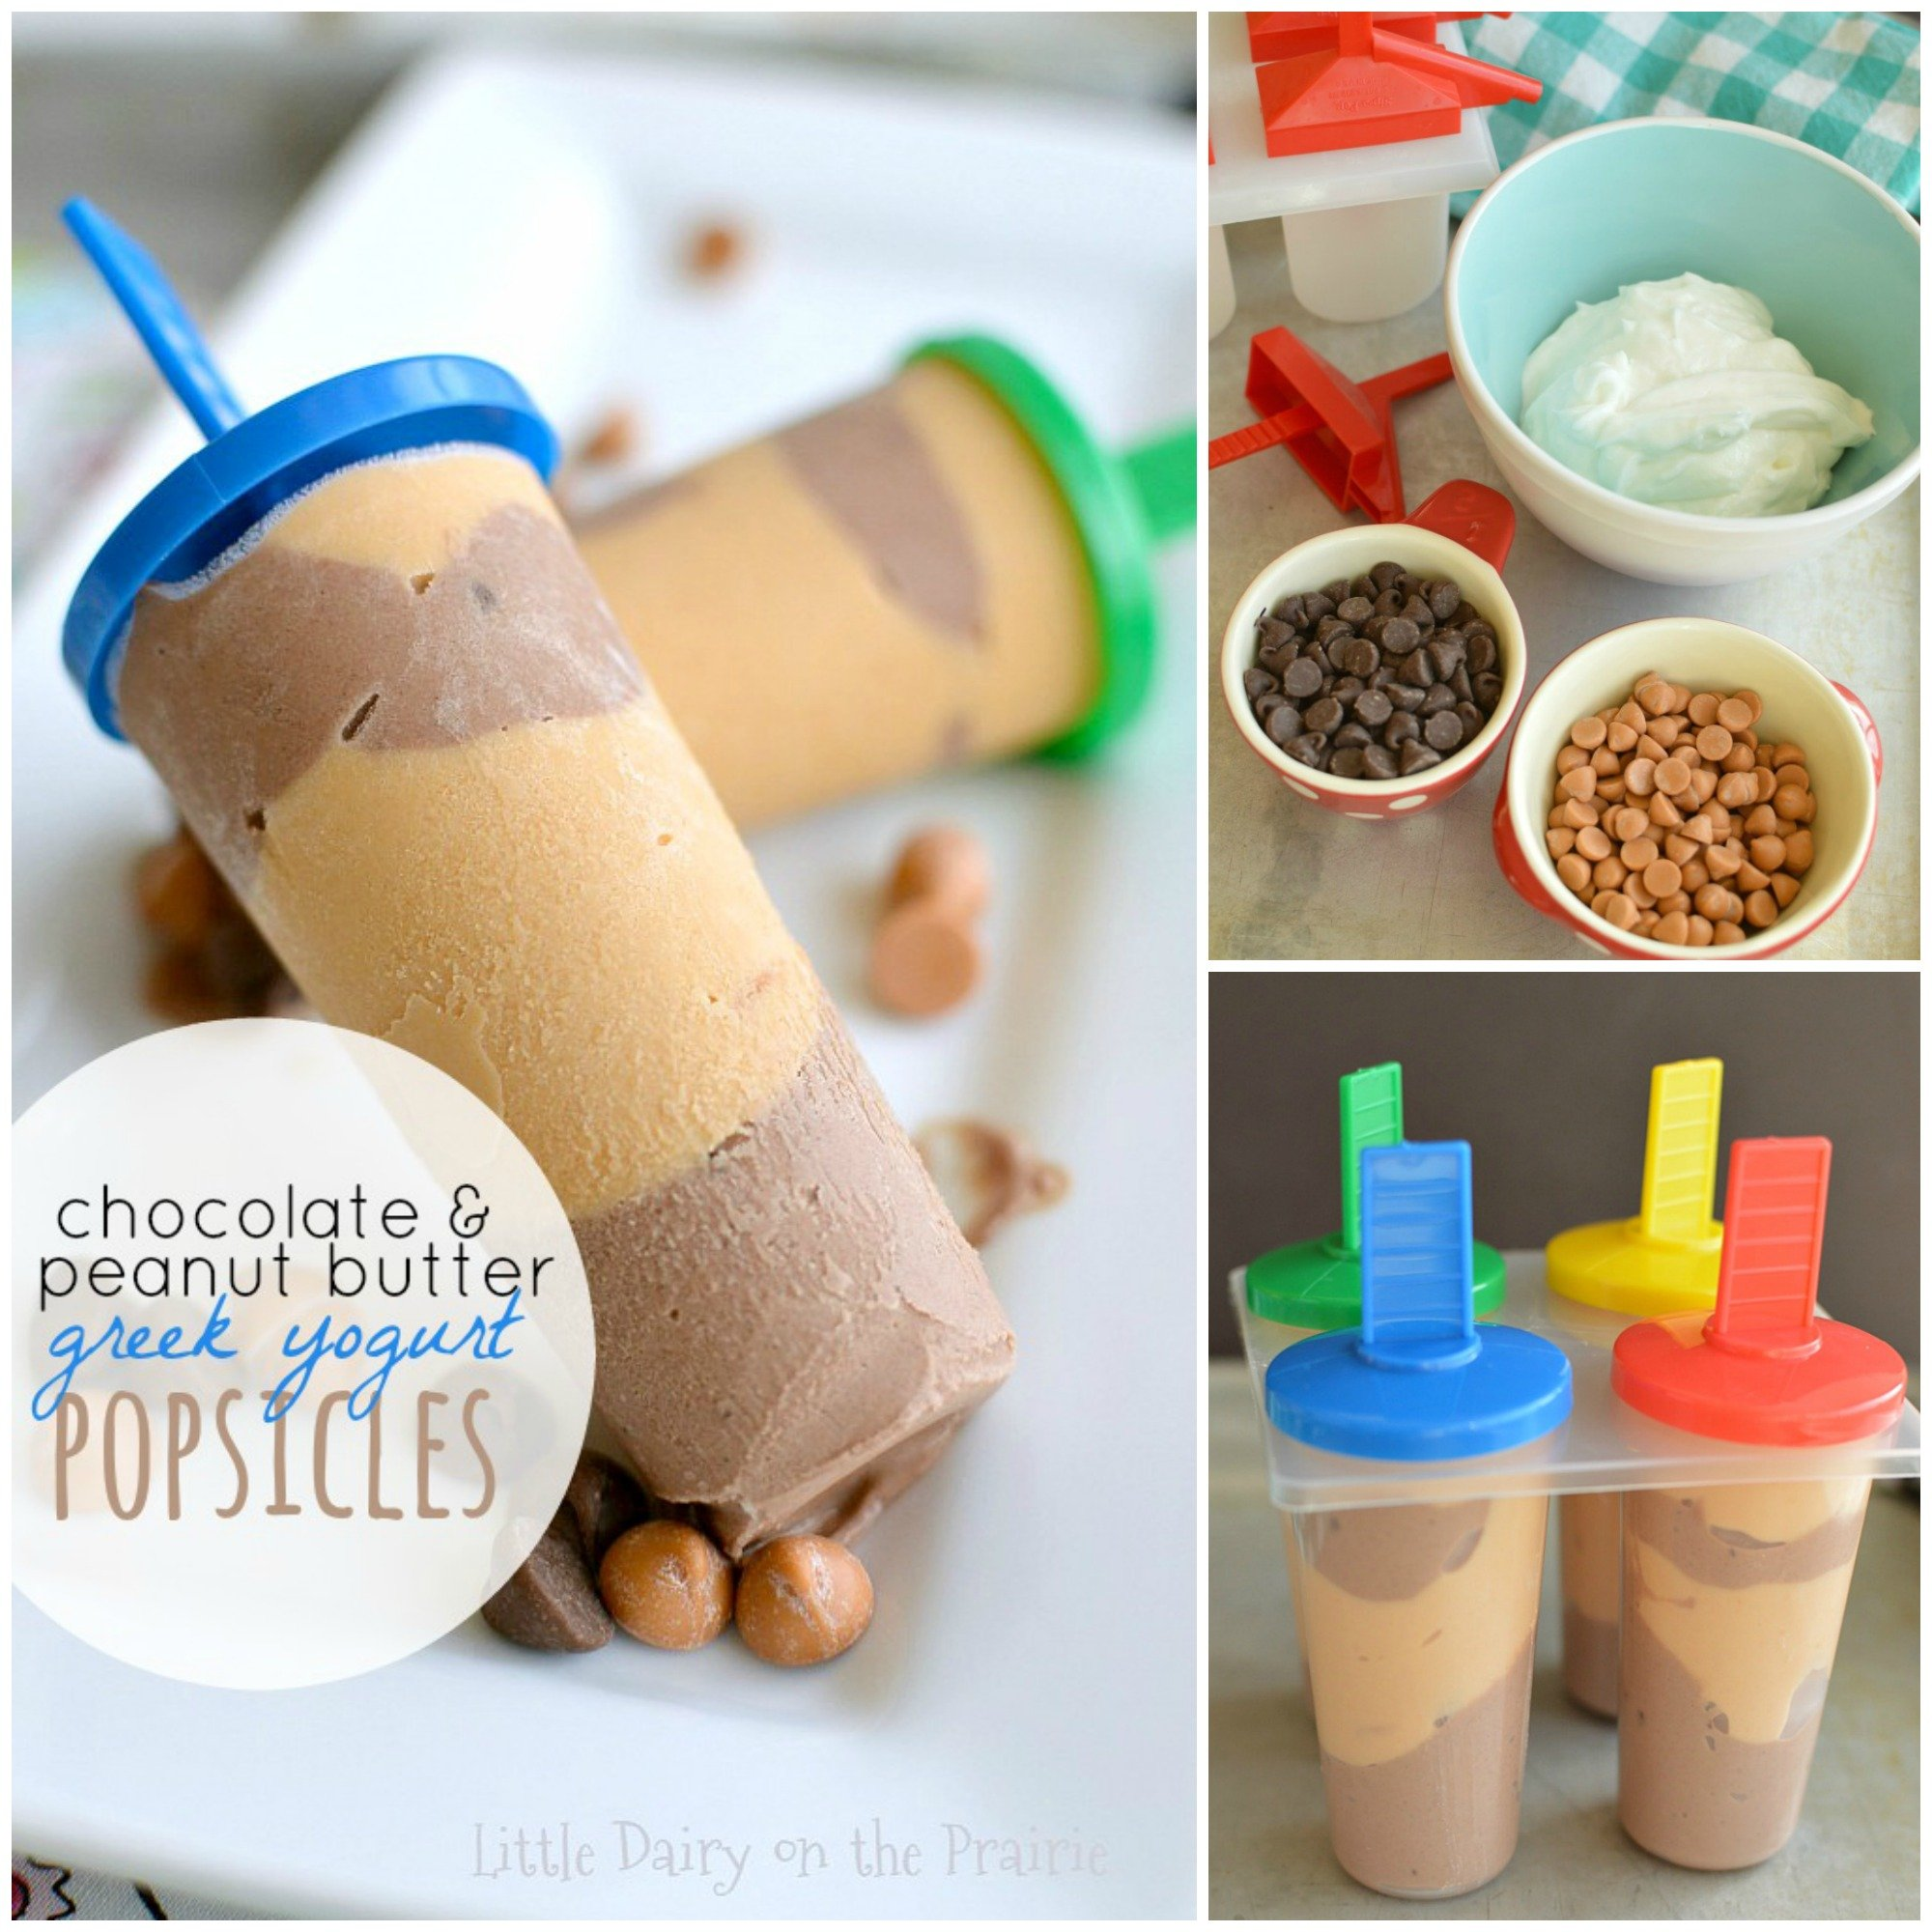 Cool off this summer with creamy and healthy Chocolate and Peanut Butter Greek Yogurt Popsicles!